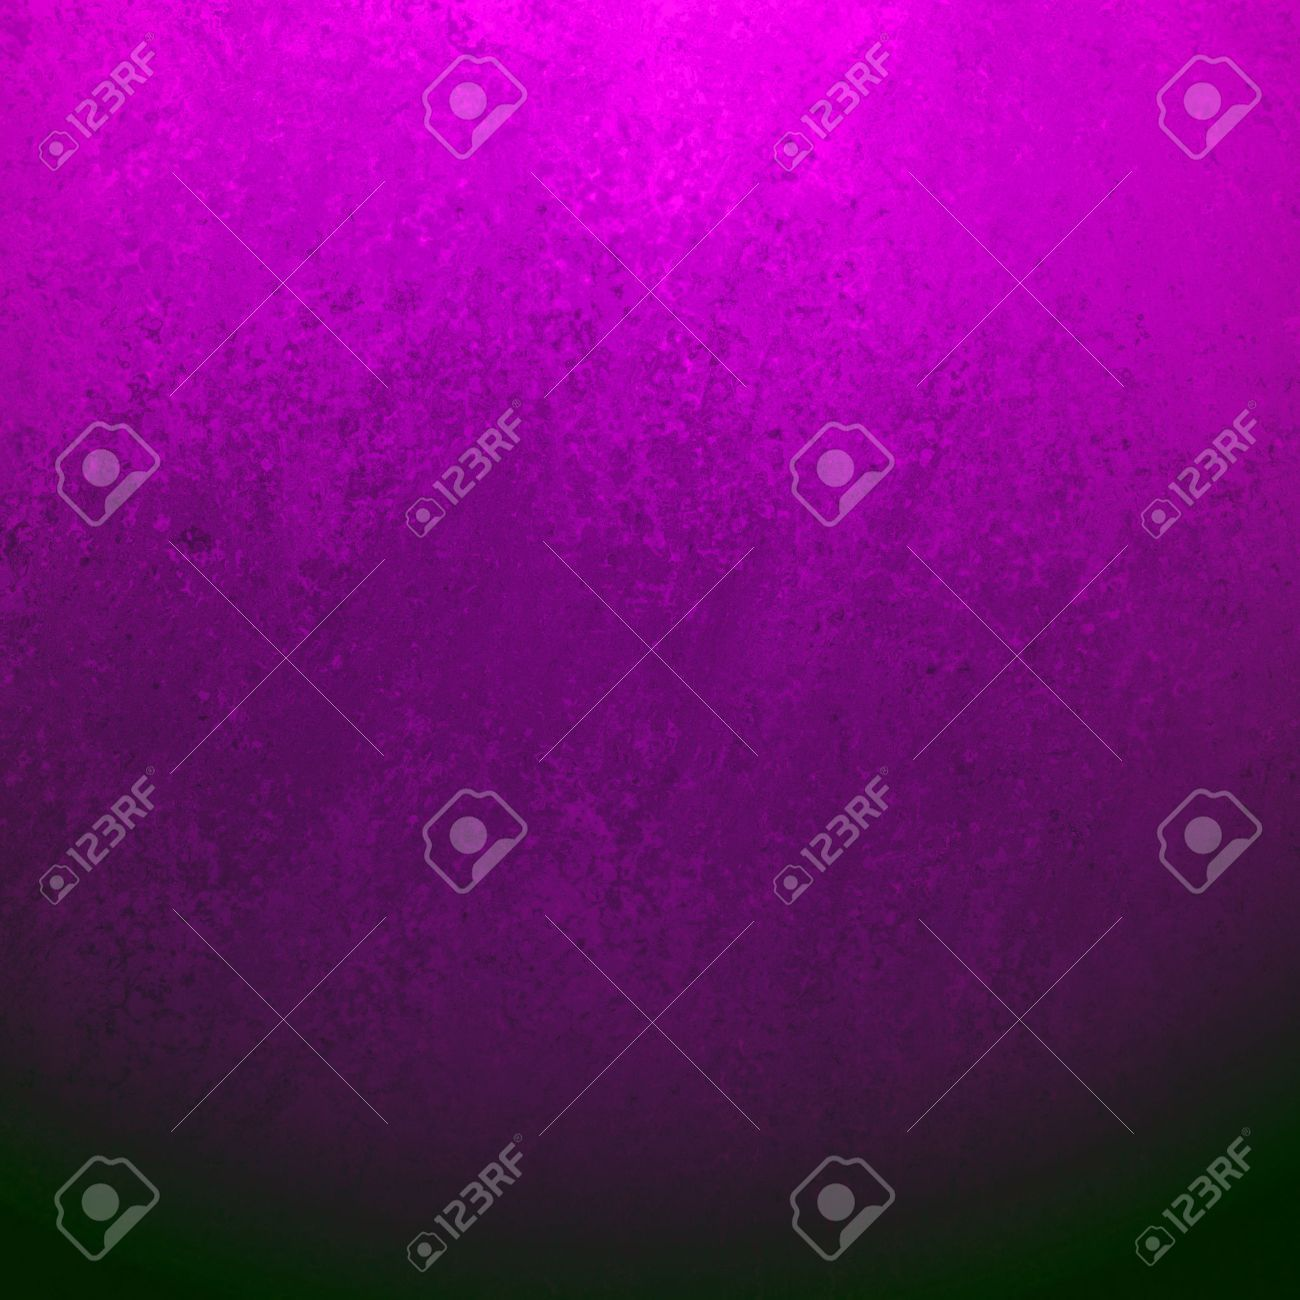 Hot Pink And Black Damask 5 X7 Area Rug By Admin Cp49789583 Cafepress Damask Black And White Background White Background Wallpaper